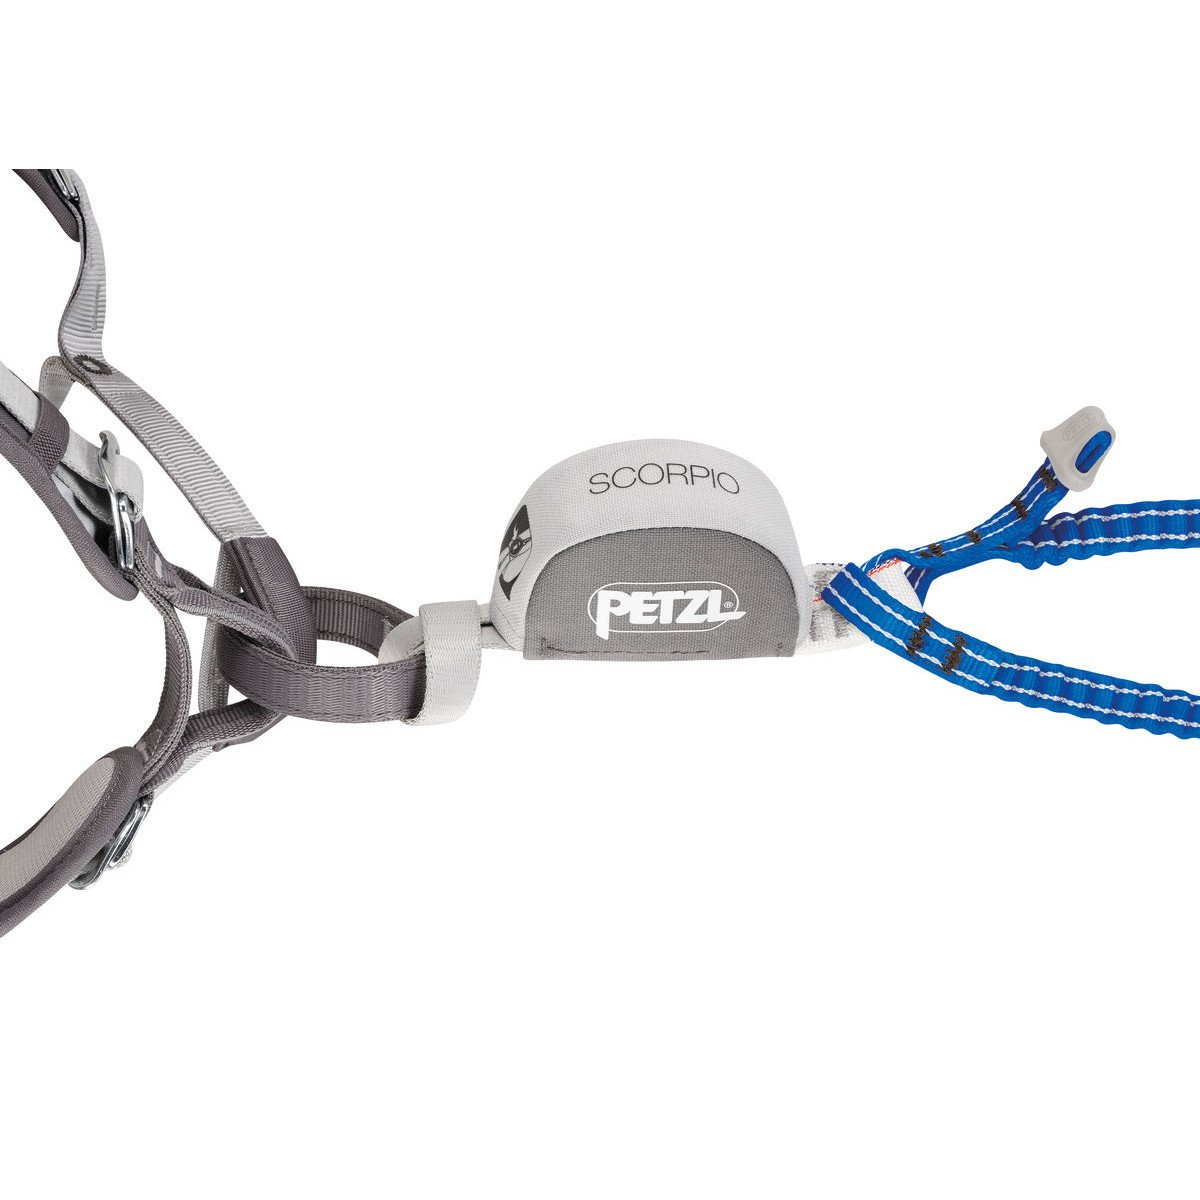 Petzl Scorpio Vertigo, shown on harness